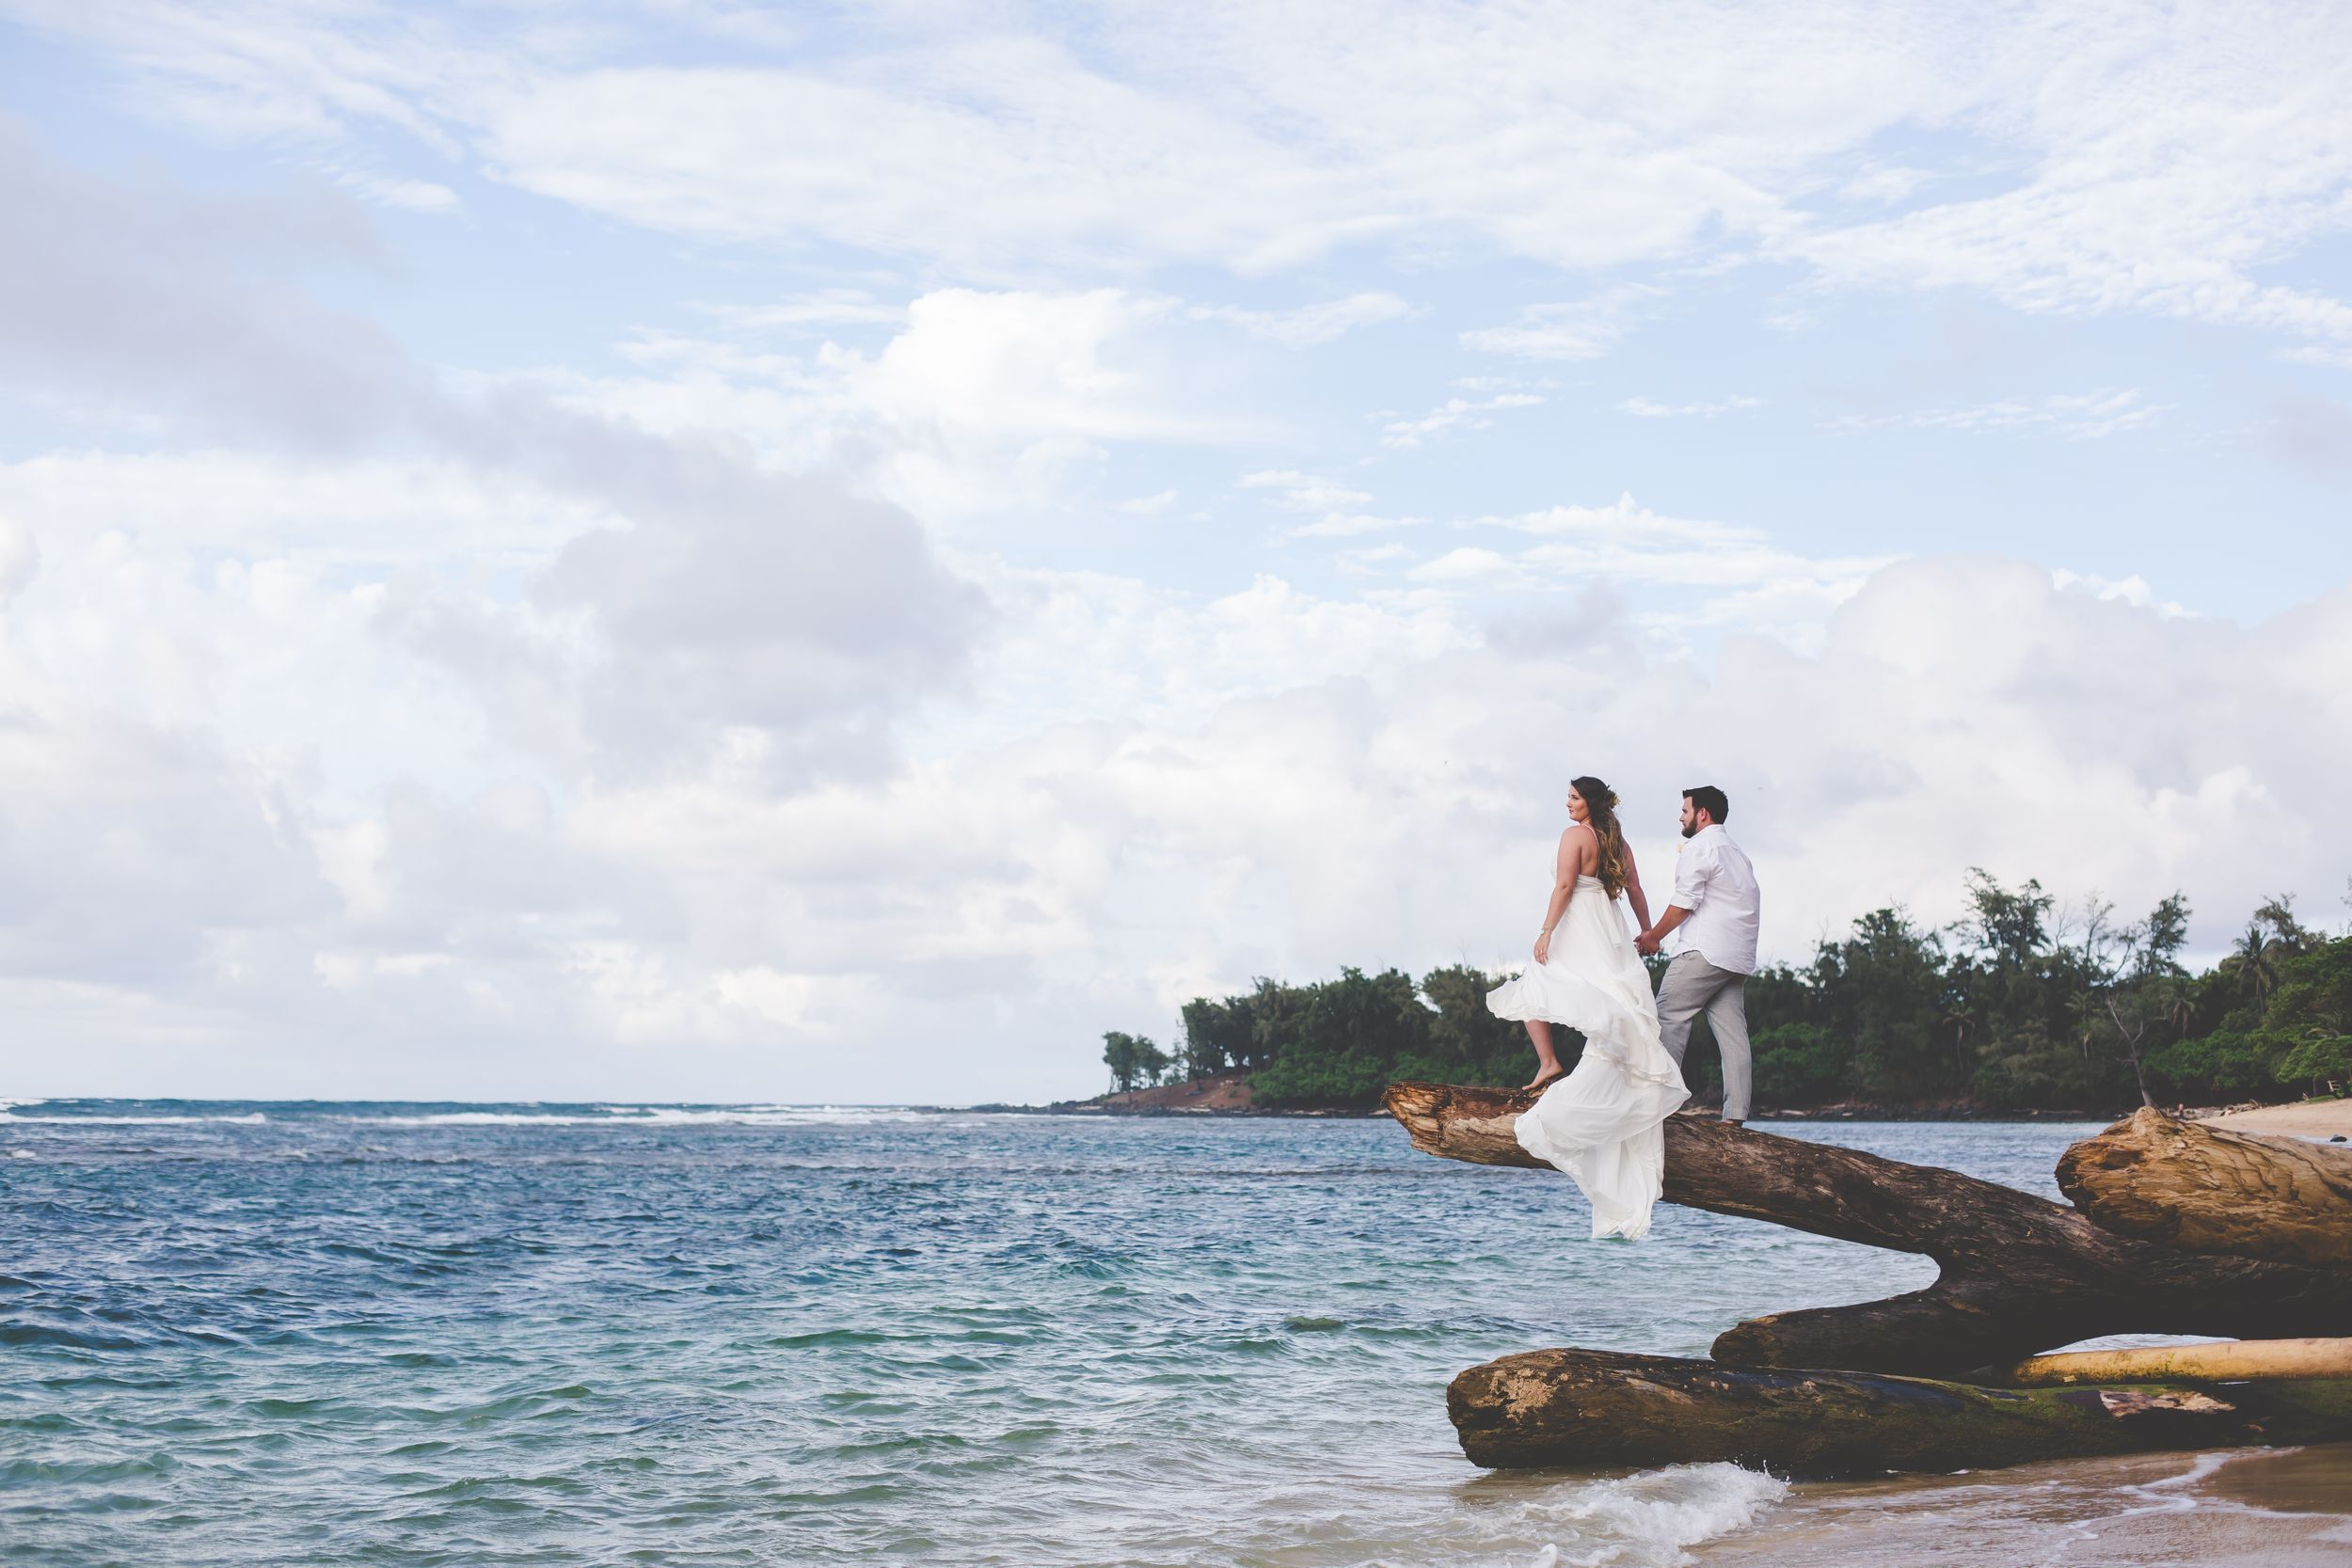 Wide photo of bride and groom standing on the end of a large lot hanging out over the ocean. Big blue sky with clouds